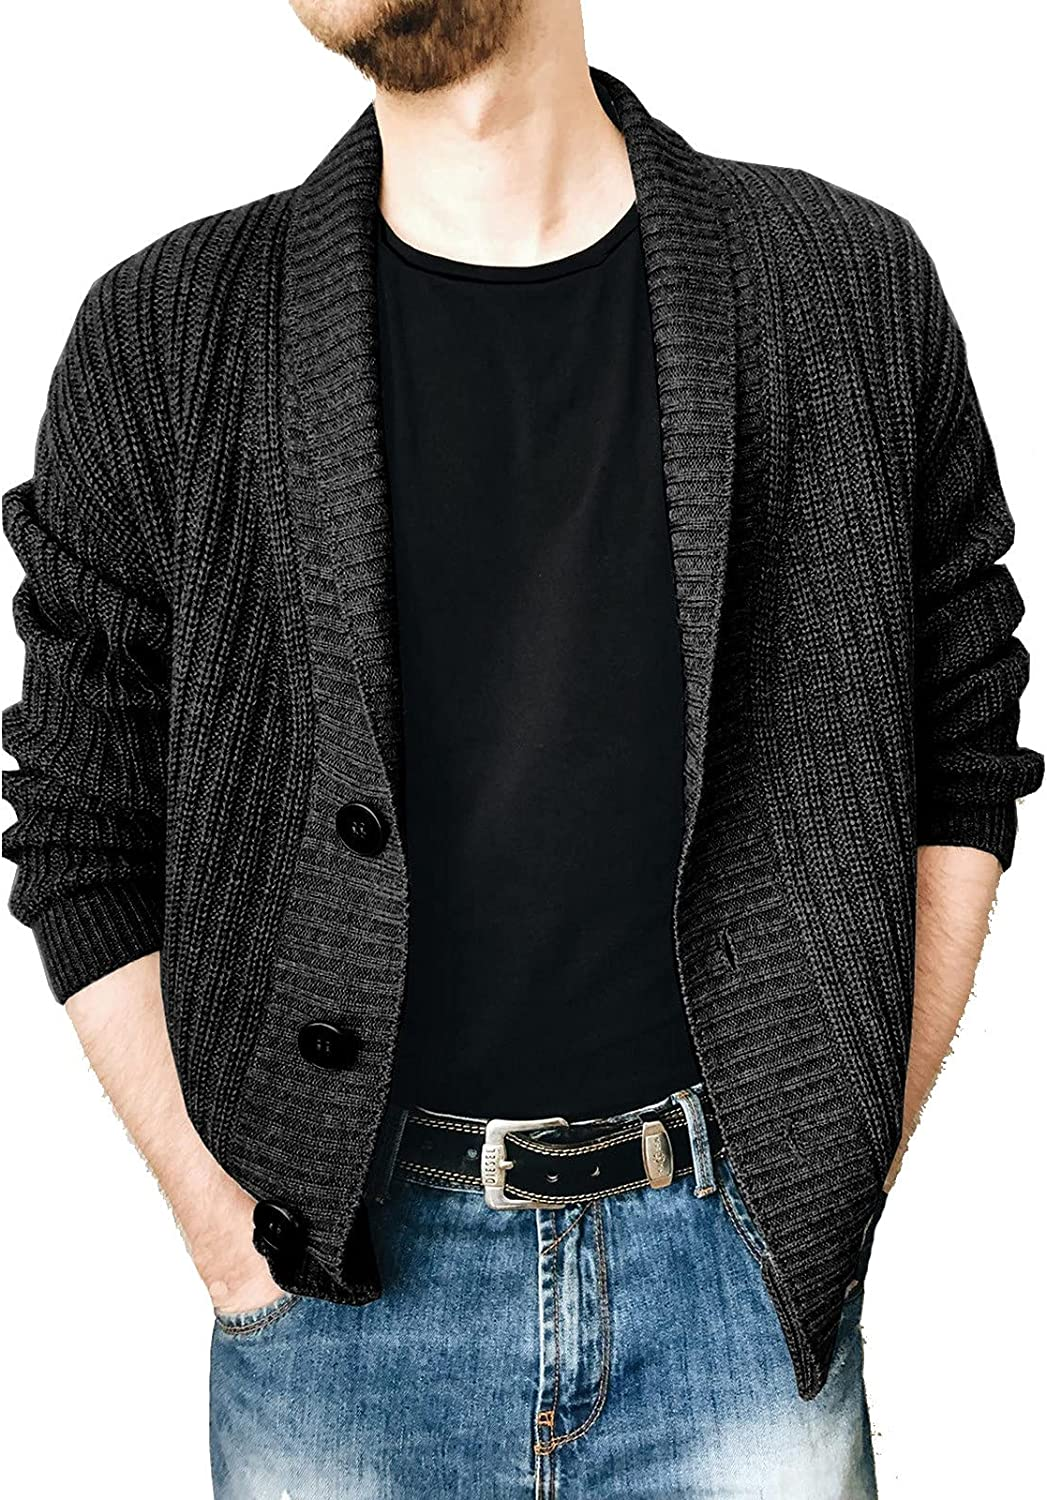 Cardigan for Men's Knitwear Coat Fashion Knitted Sweater Jacket Single Breasted Long Sleeve Henley Sweater Tops